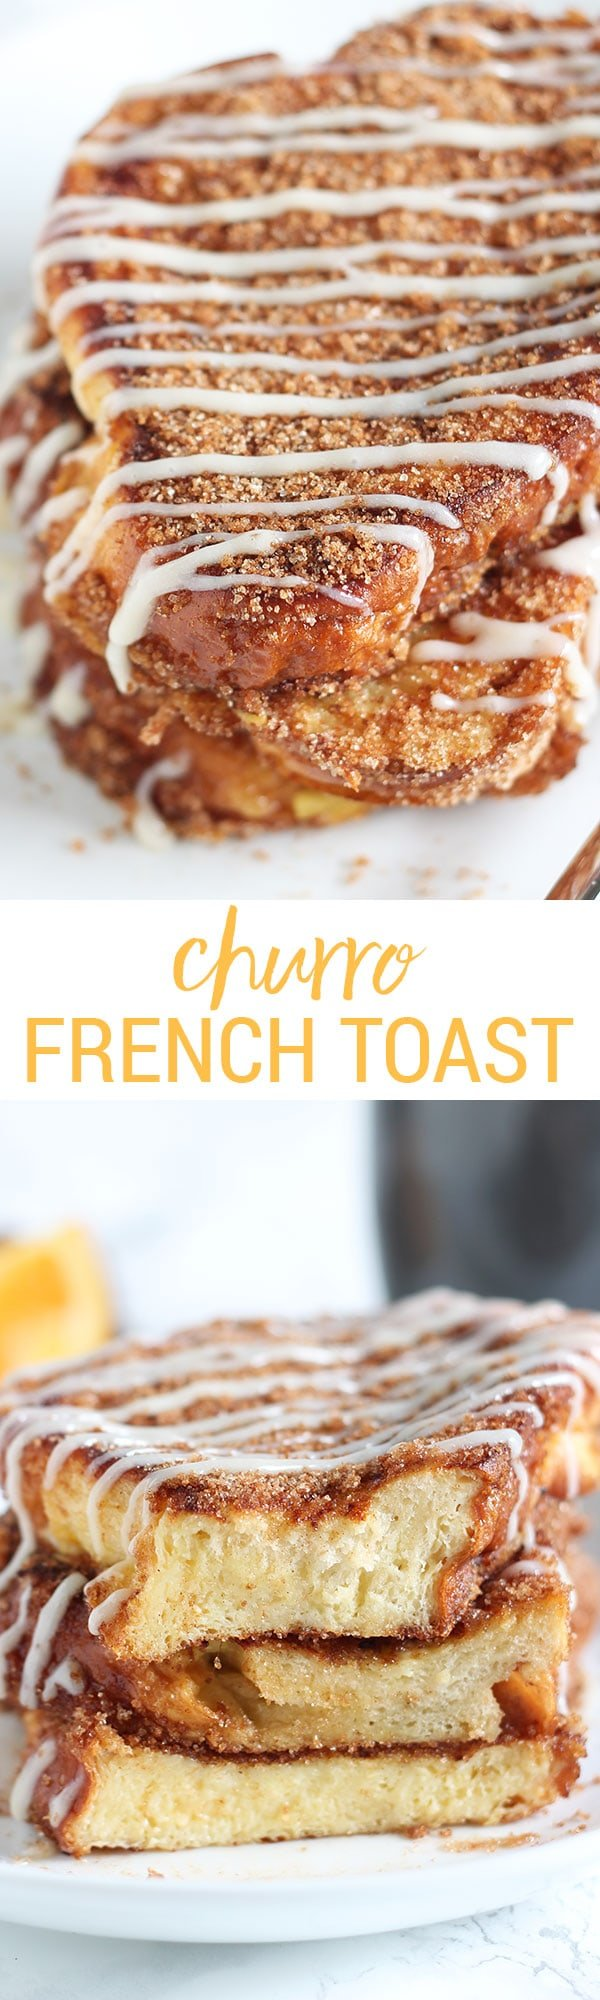 Possible The Best French Toast Ever Sooo Good Churro French Toast Handle  The Heat How To Make